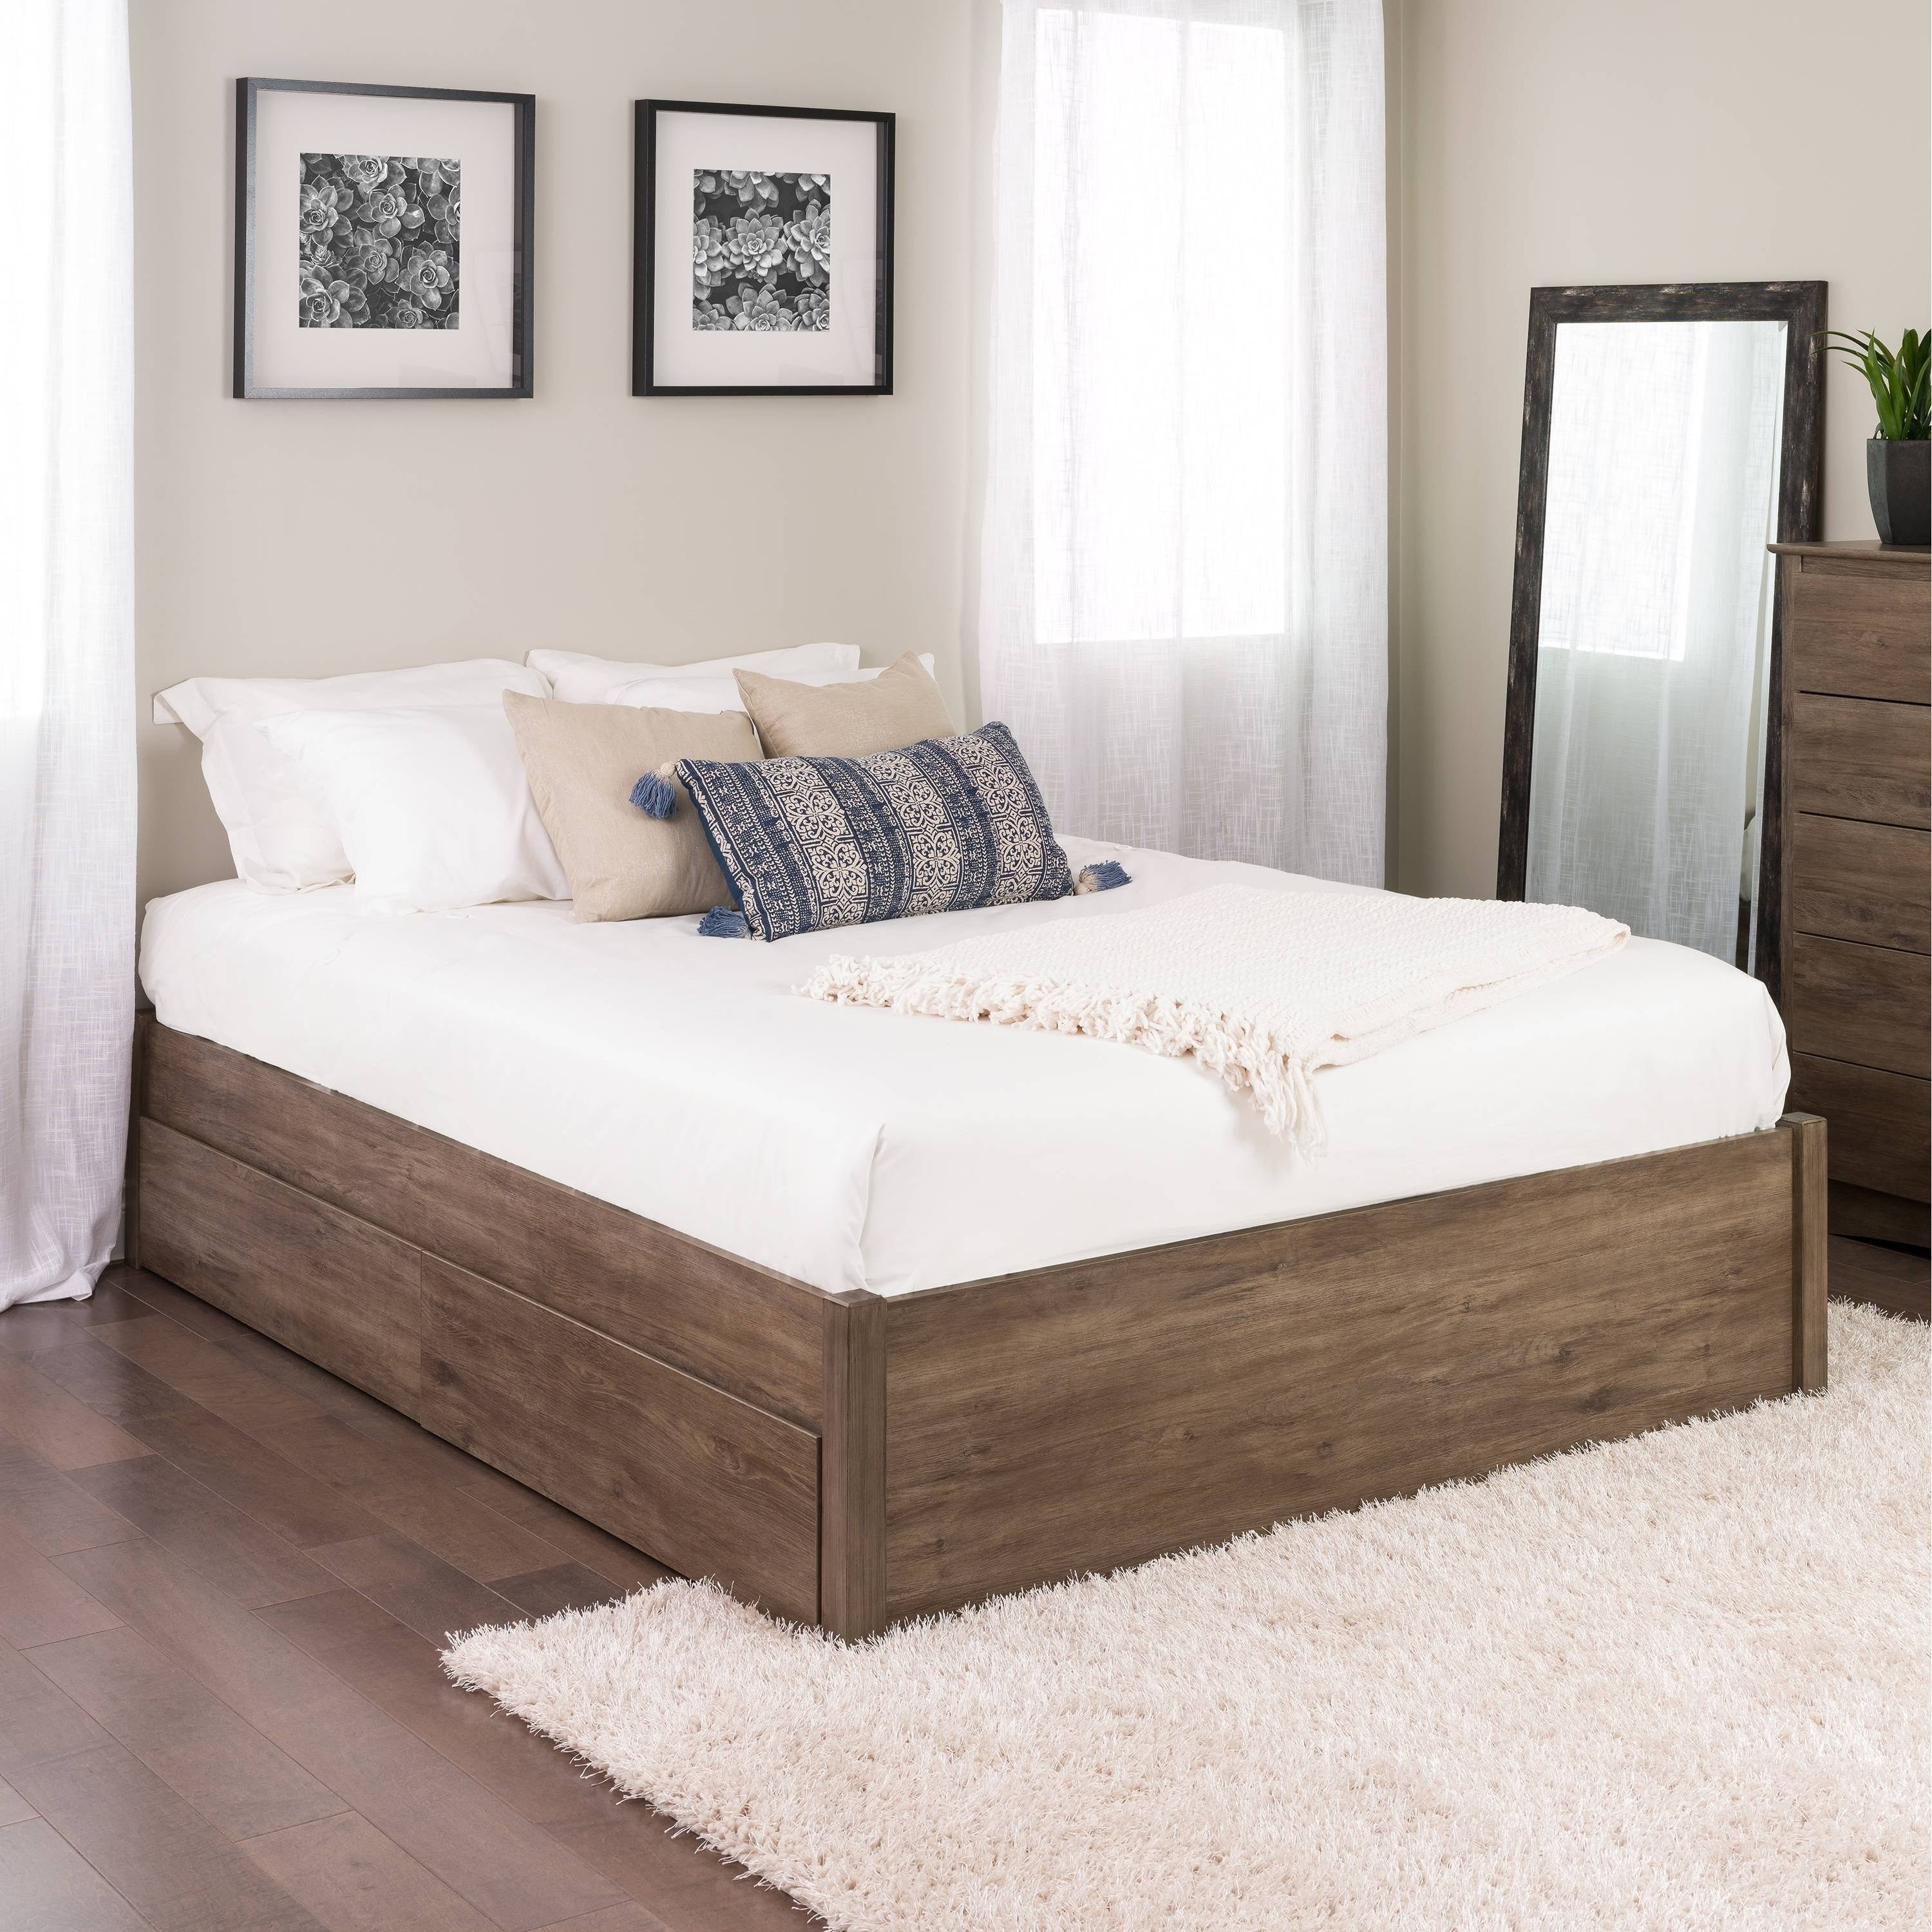 Queen Bedroom Set with Storage Drawers Luxury Prepac Queen Select 4 Post Platform Bed with Optional Drawers